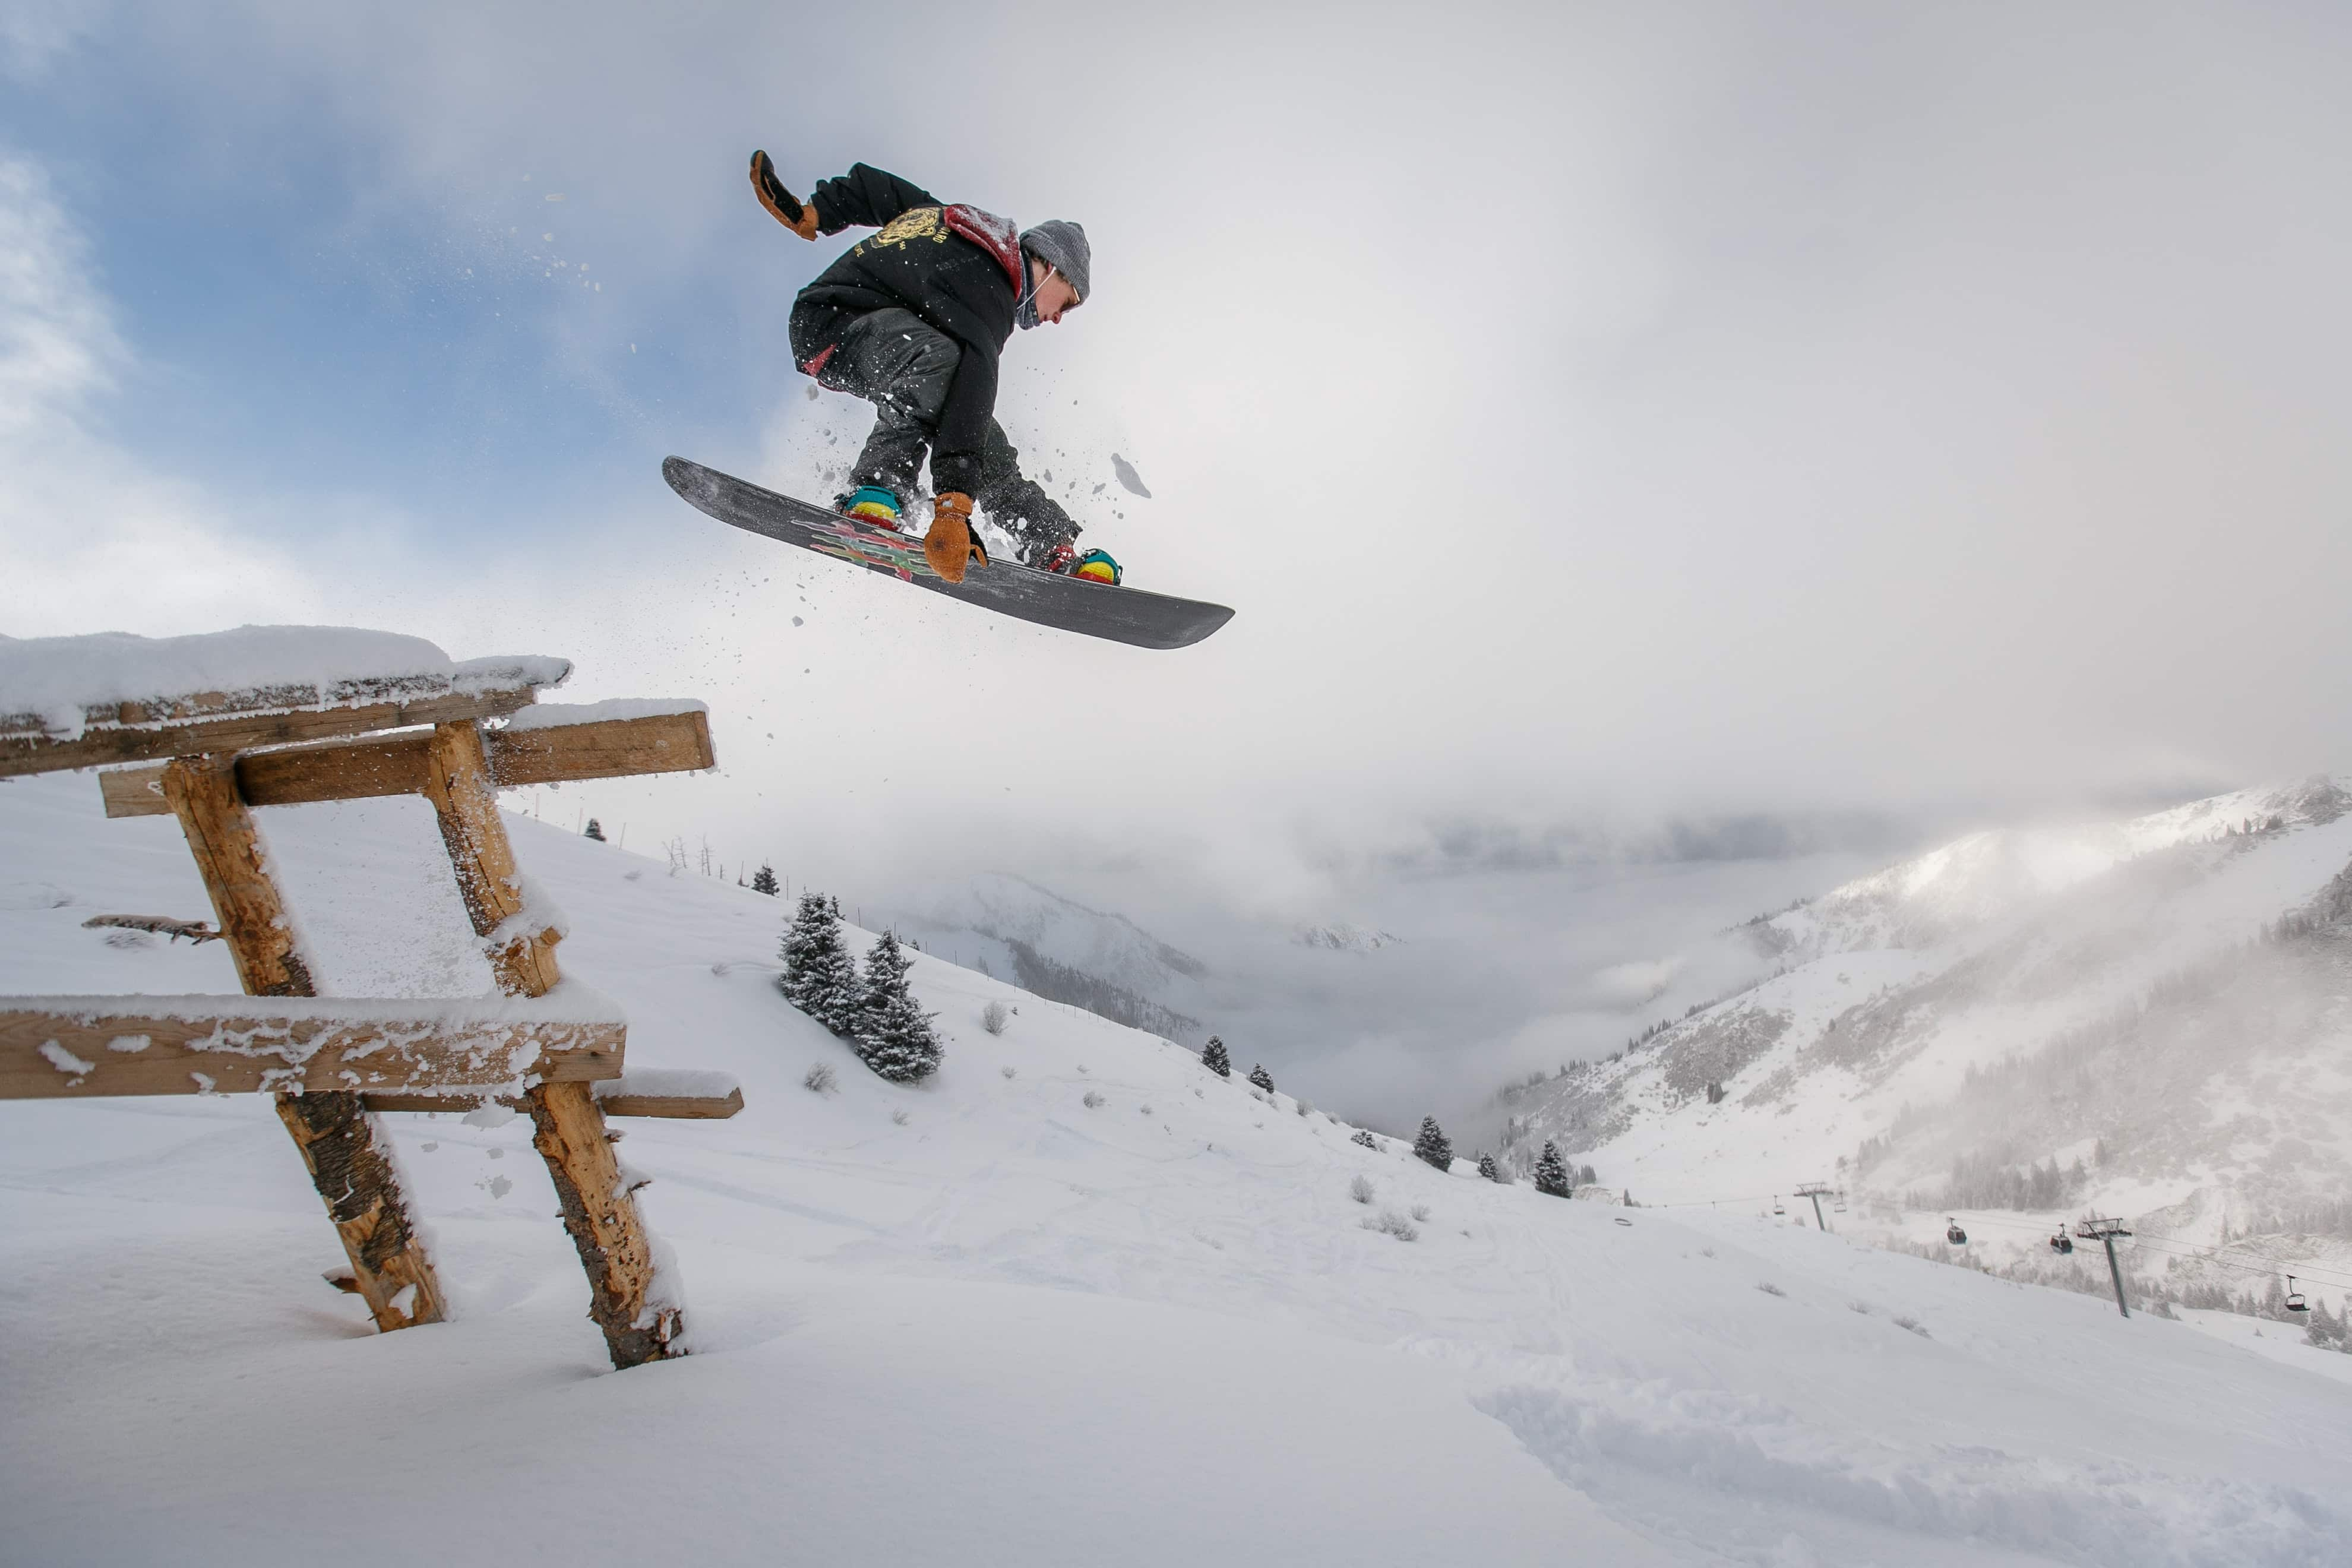 Snowboarder jumping over wooden bench in snow